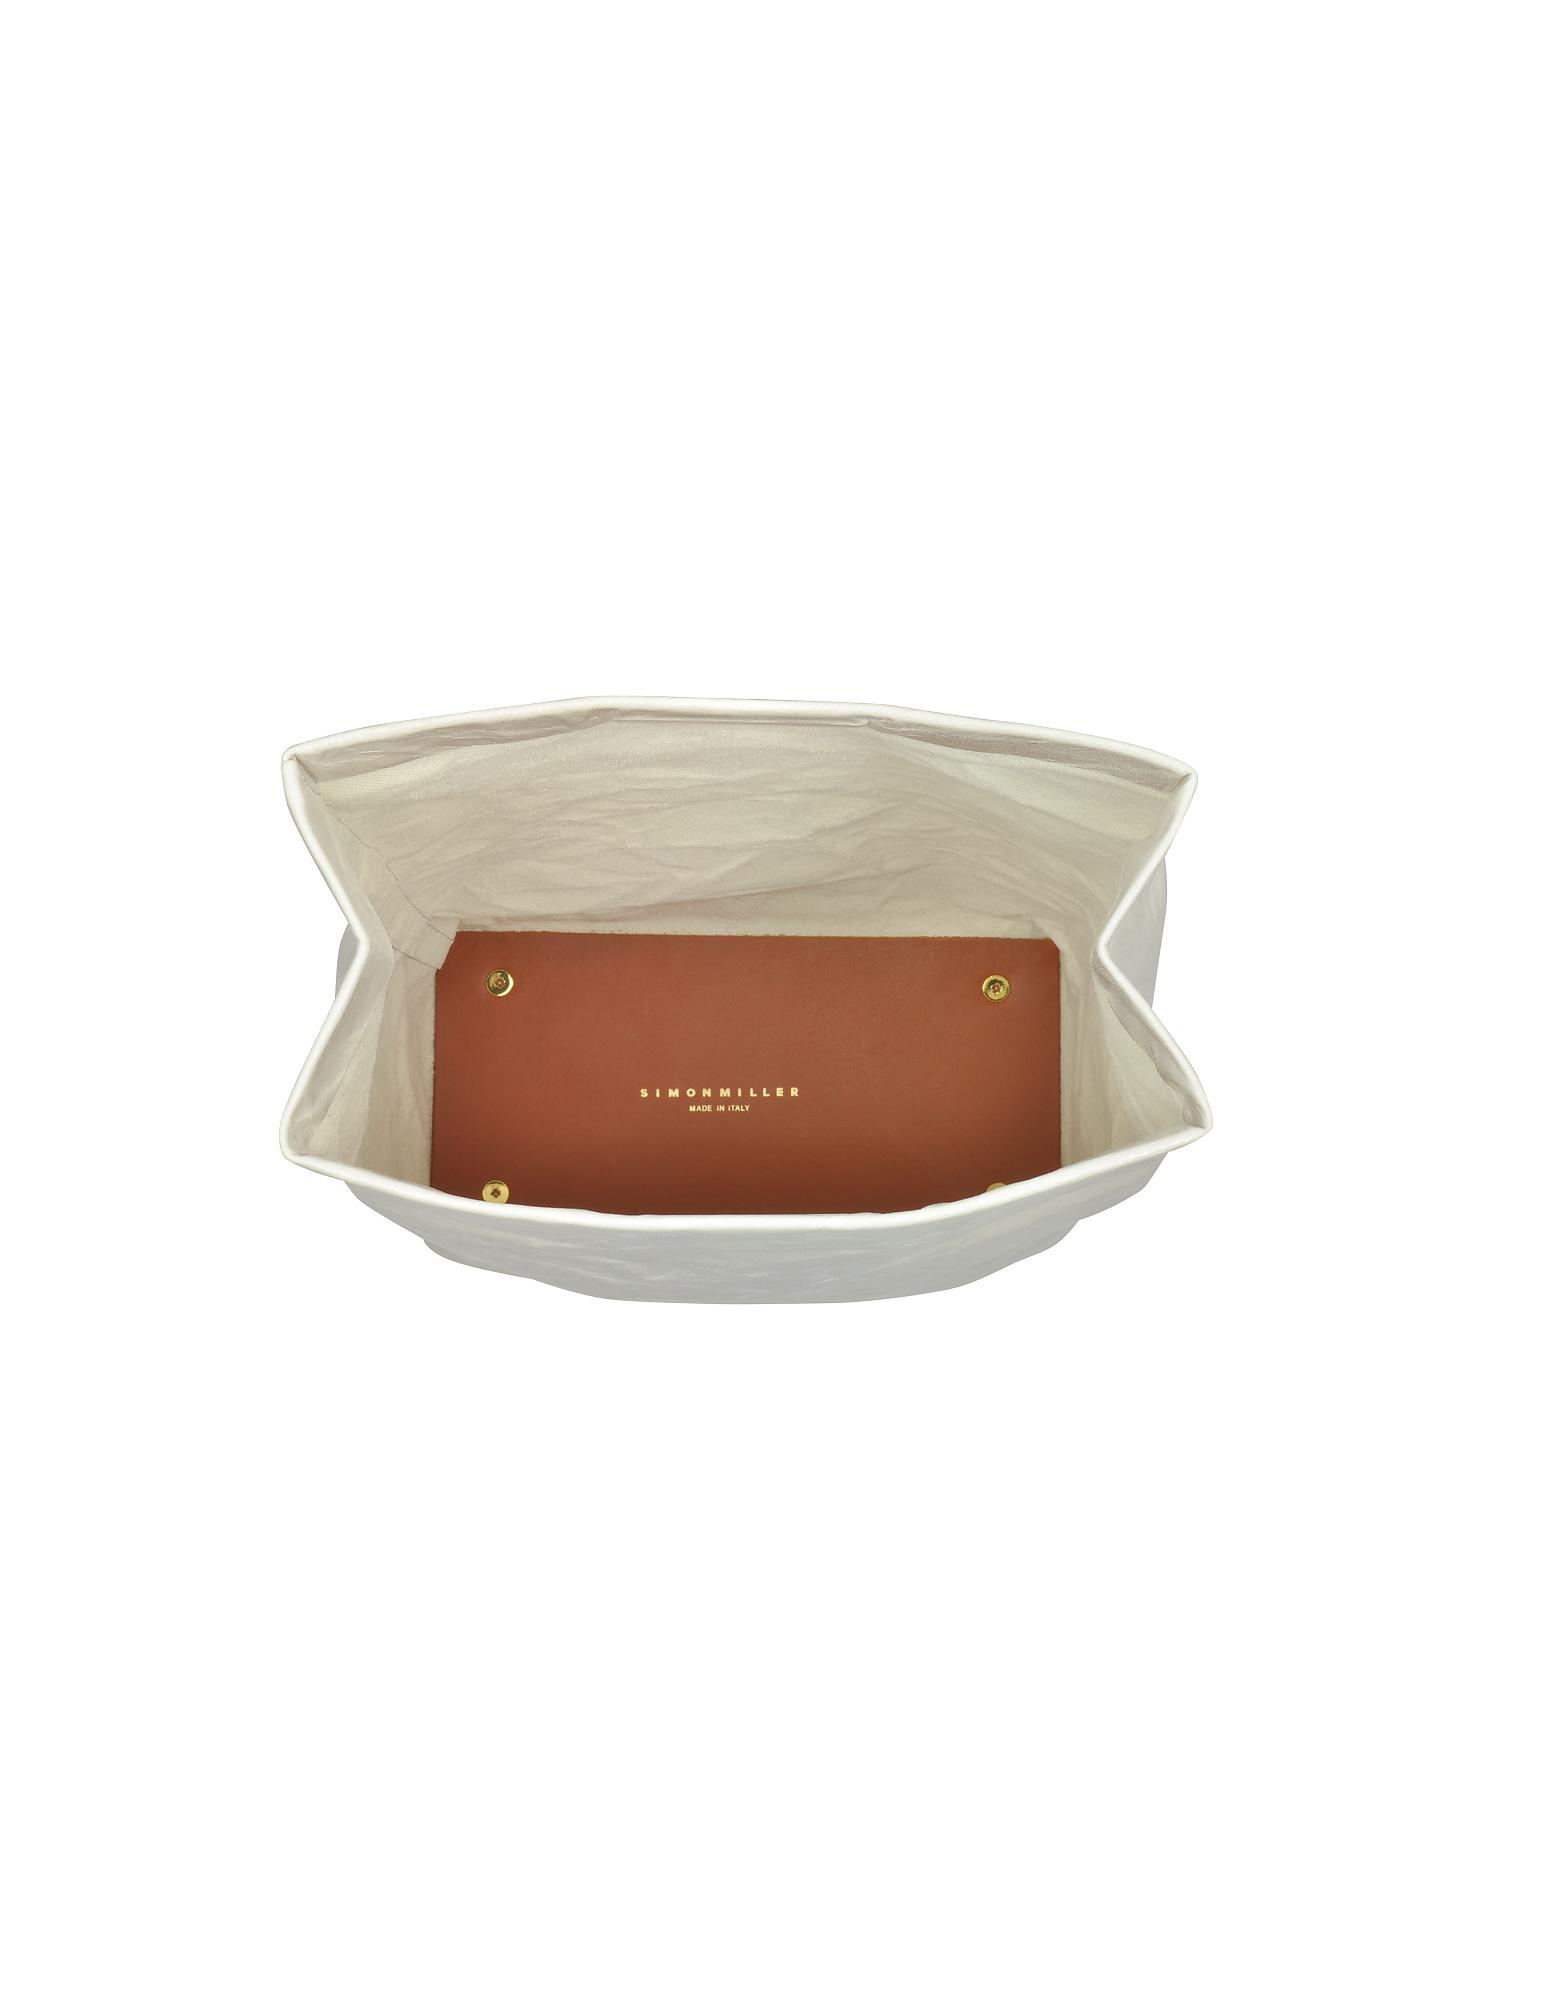 Lyst - Simon Miller S809 Cliff Leather 20 Cm Lunch Bag in Gray adfd18b58a4a3